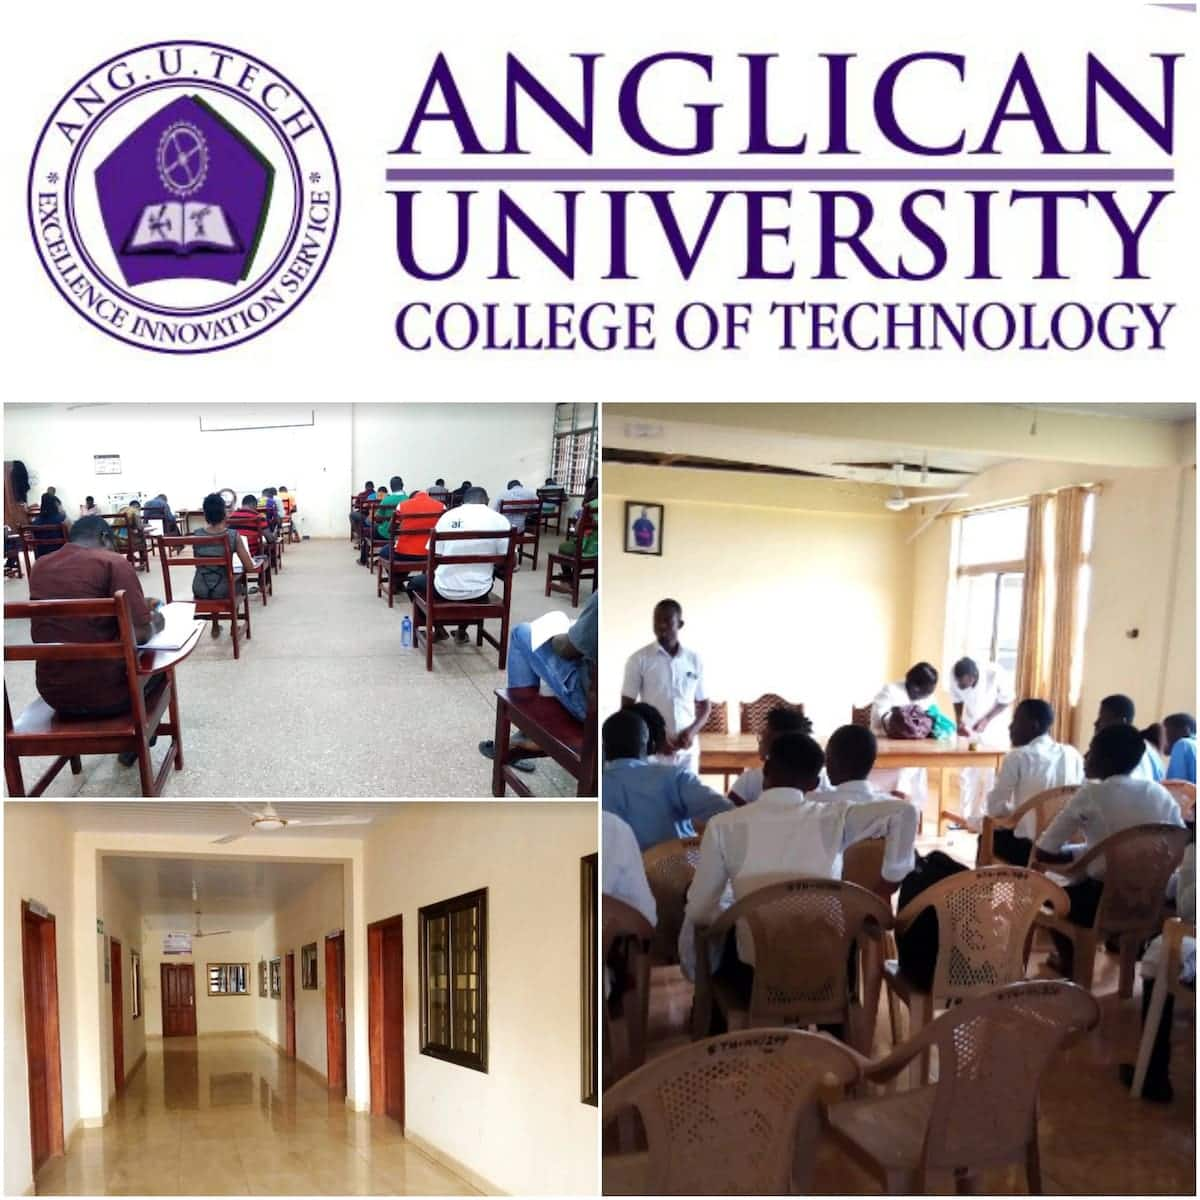 anglican university college of technology nkoranza admission requirements angutech university anglican university admission anglican university college of technology nkoranza